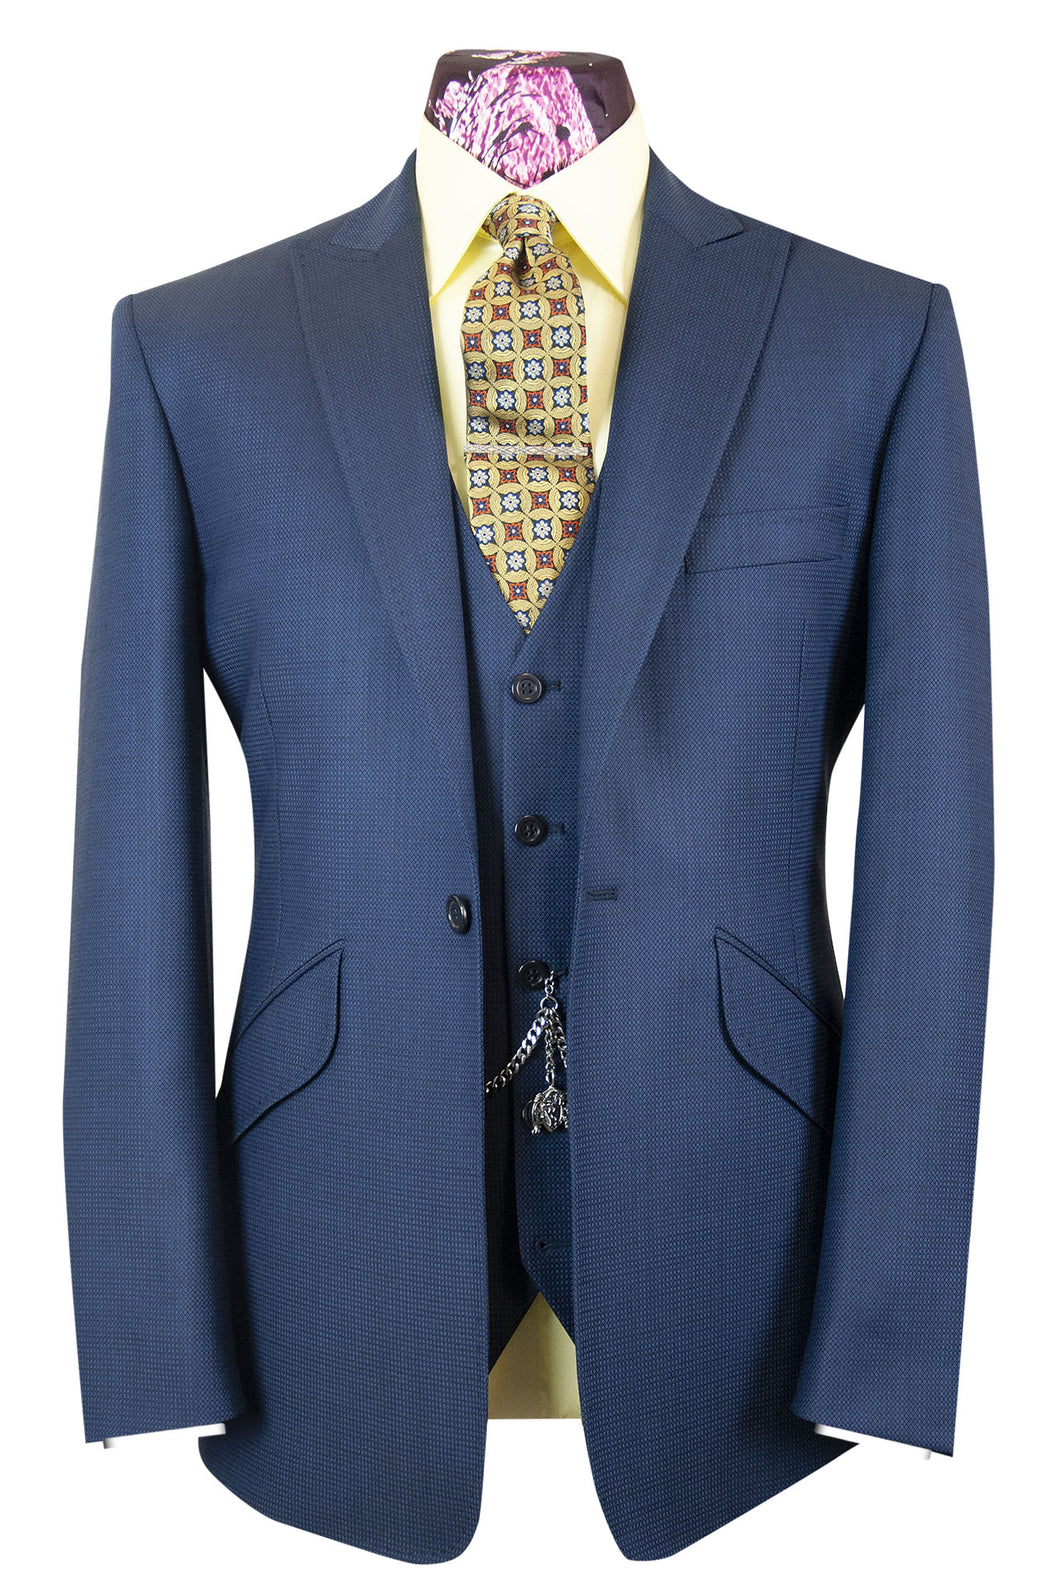 The Holland Admiral Blue Suit with Birdseye Pattern